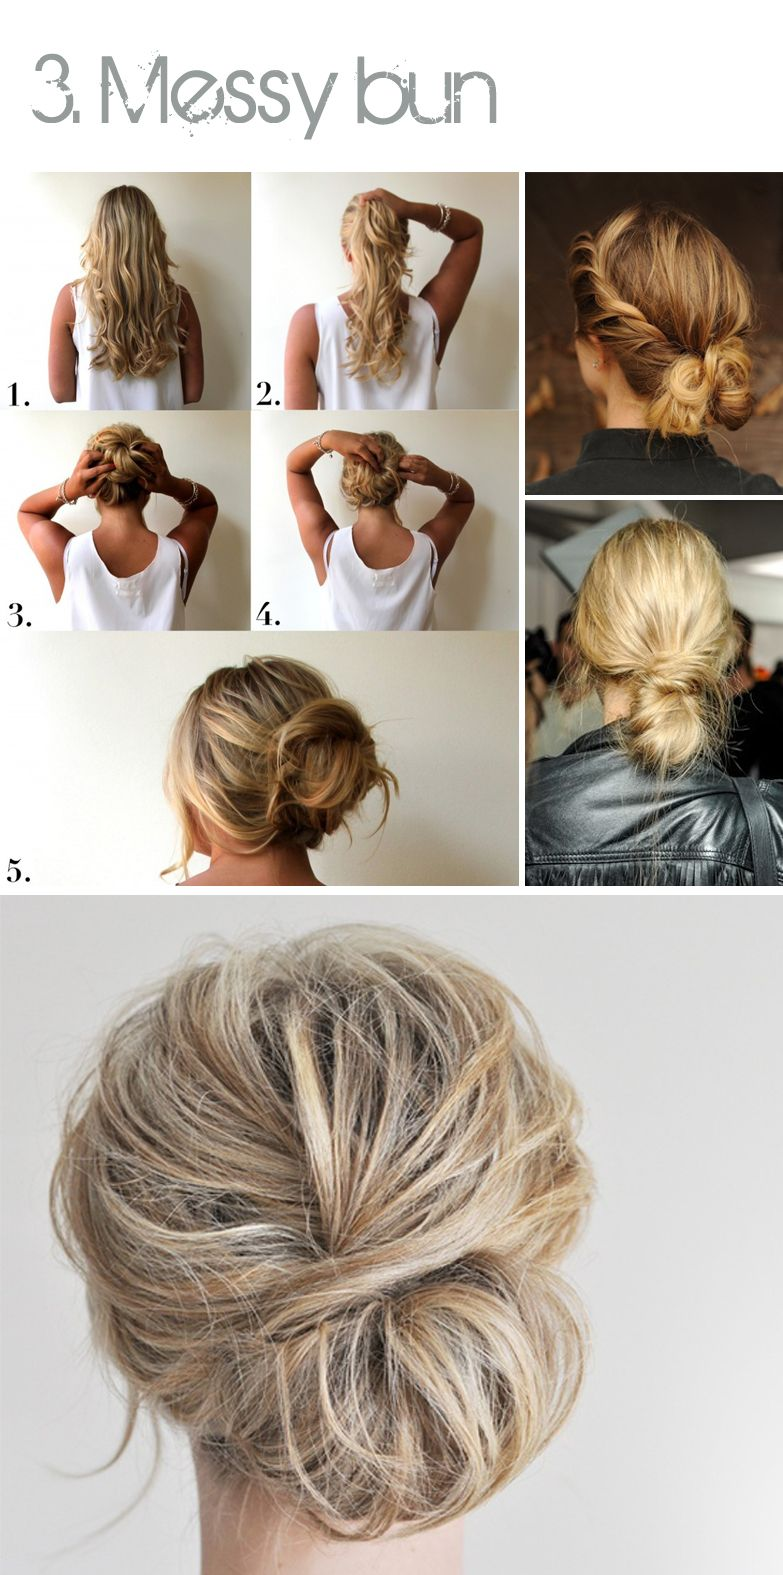 Just daily things top 4 hair dos braids buns ponytails how perfect hairstyles do it yourself with easy tutorials with these four easy hair tutorials you make these pretty hairstyles easily yourself solutioingenieria Gallery